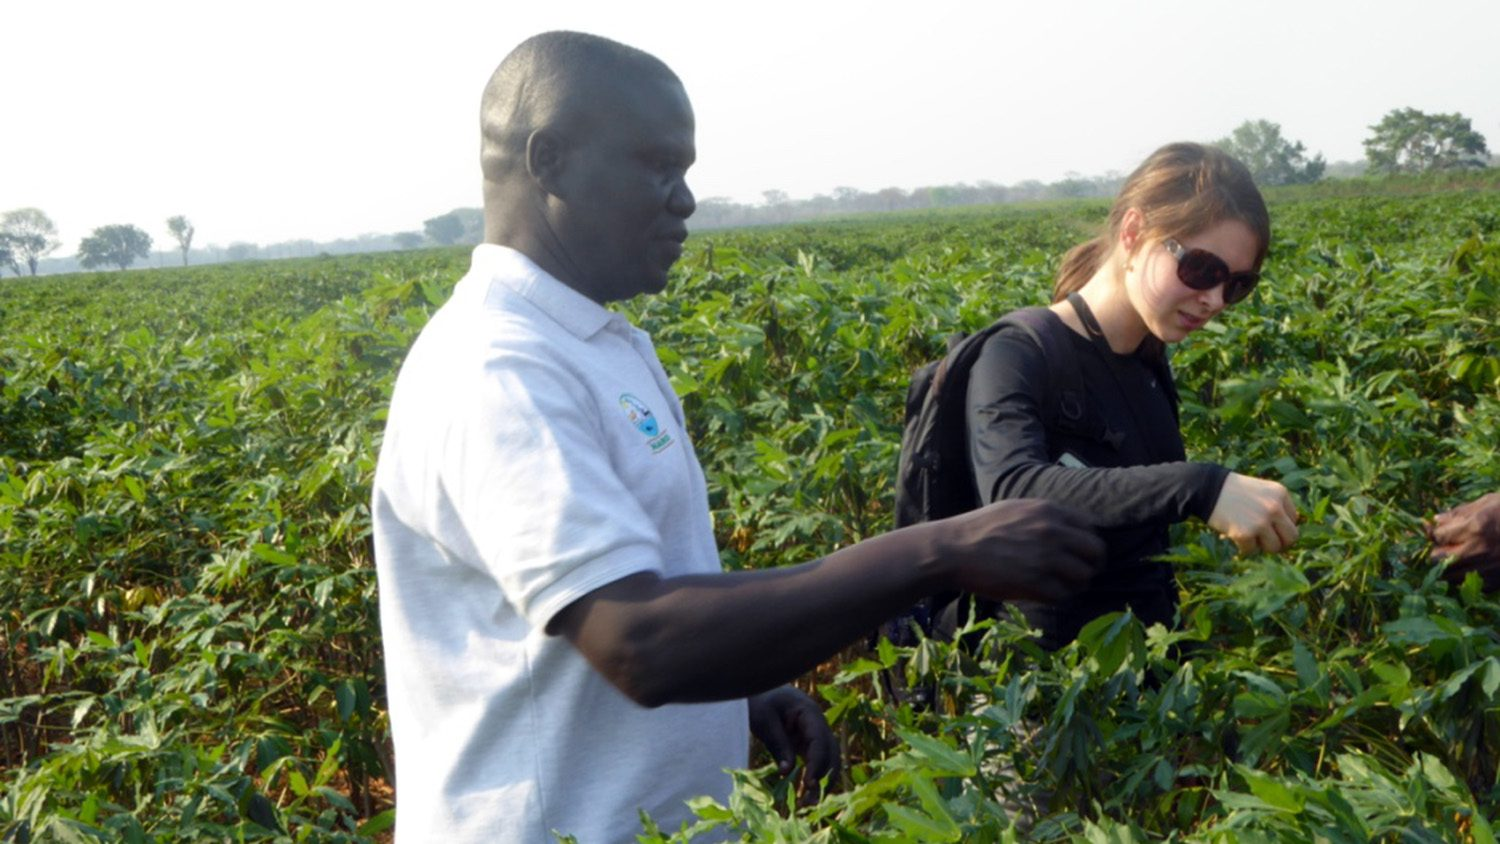 2016 photo of Catherine Doyle (right), learning cassava mosaic disease field diagnosis and whitefly collection methods in Zambia. The man in the foreground is Titus Alicia, a research scientist from the National Crops Resources Research Institute of Uganda. Photo credit: Linda Hanley-Bowdoin.